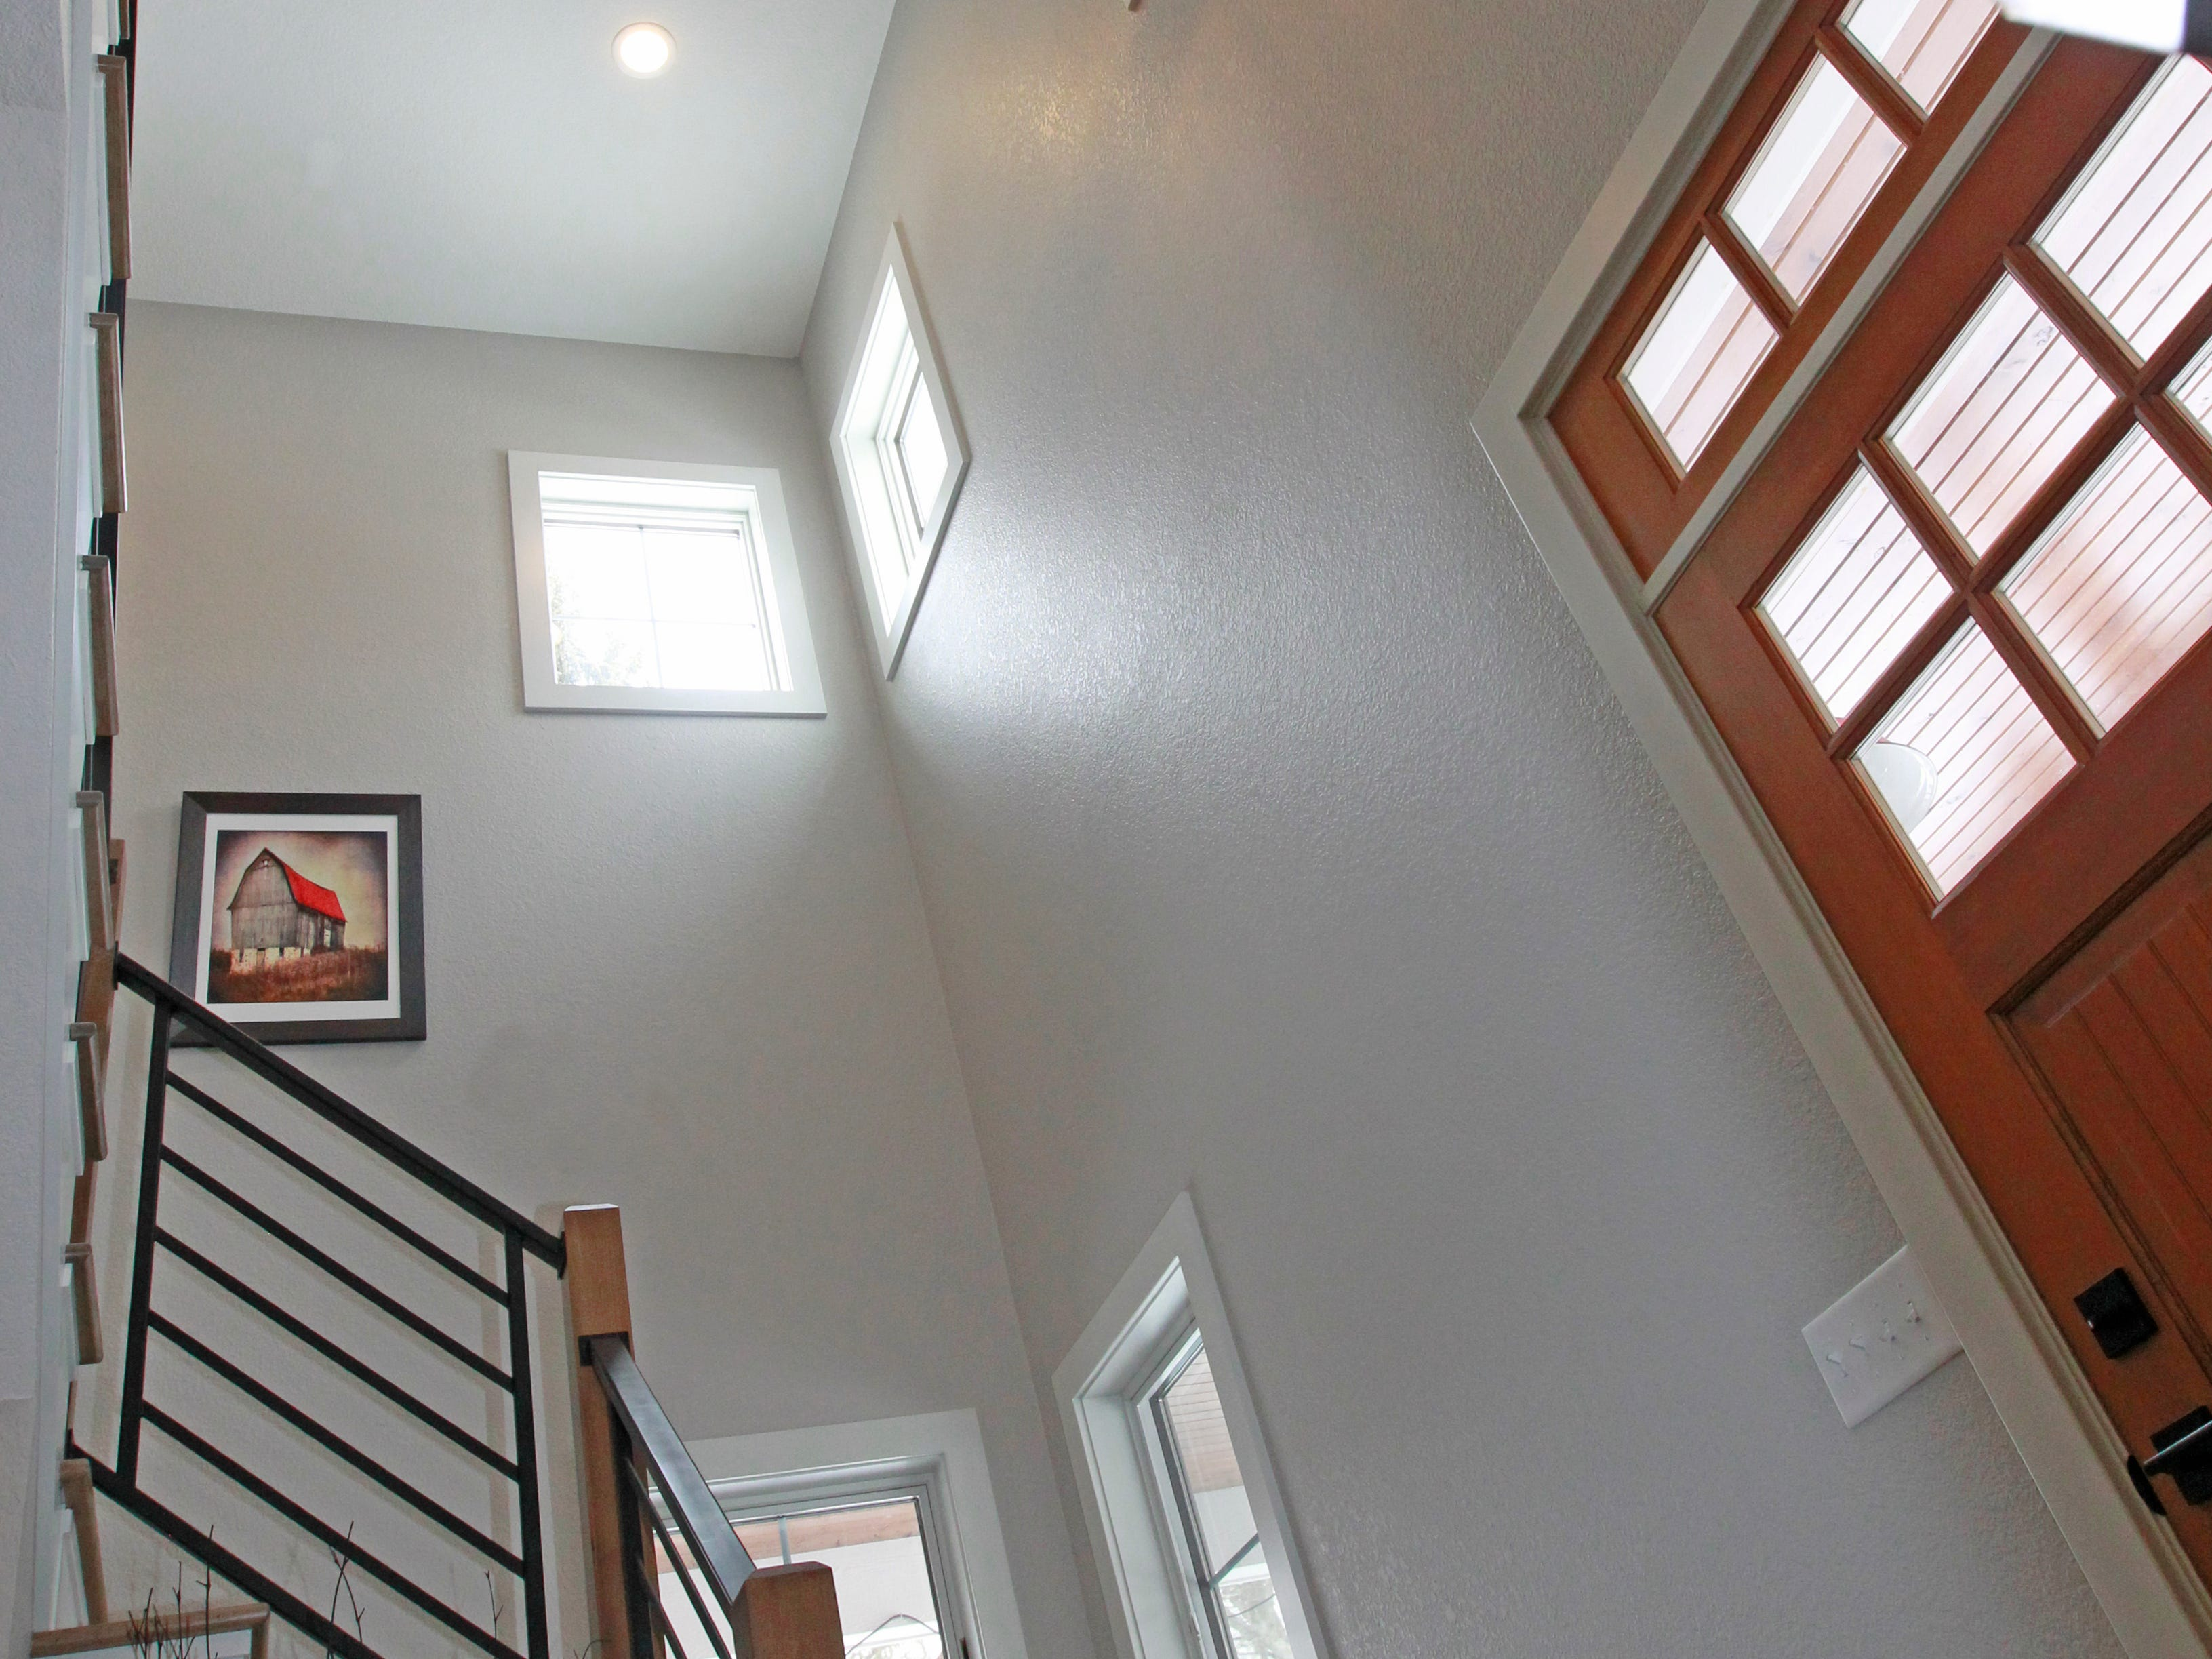 The staircase adds a decidedly modern touch to the farmhouse design.